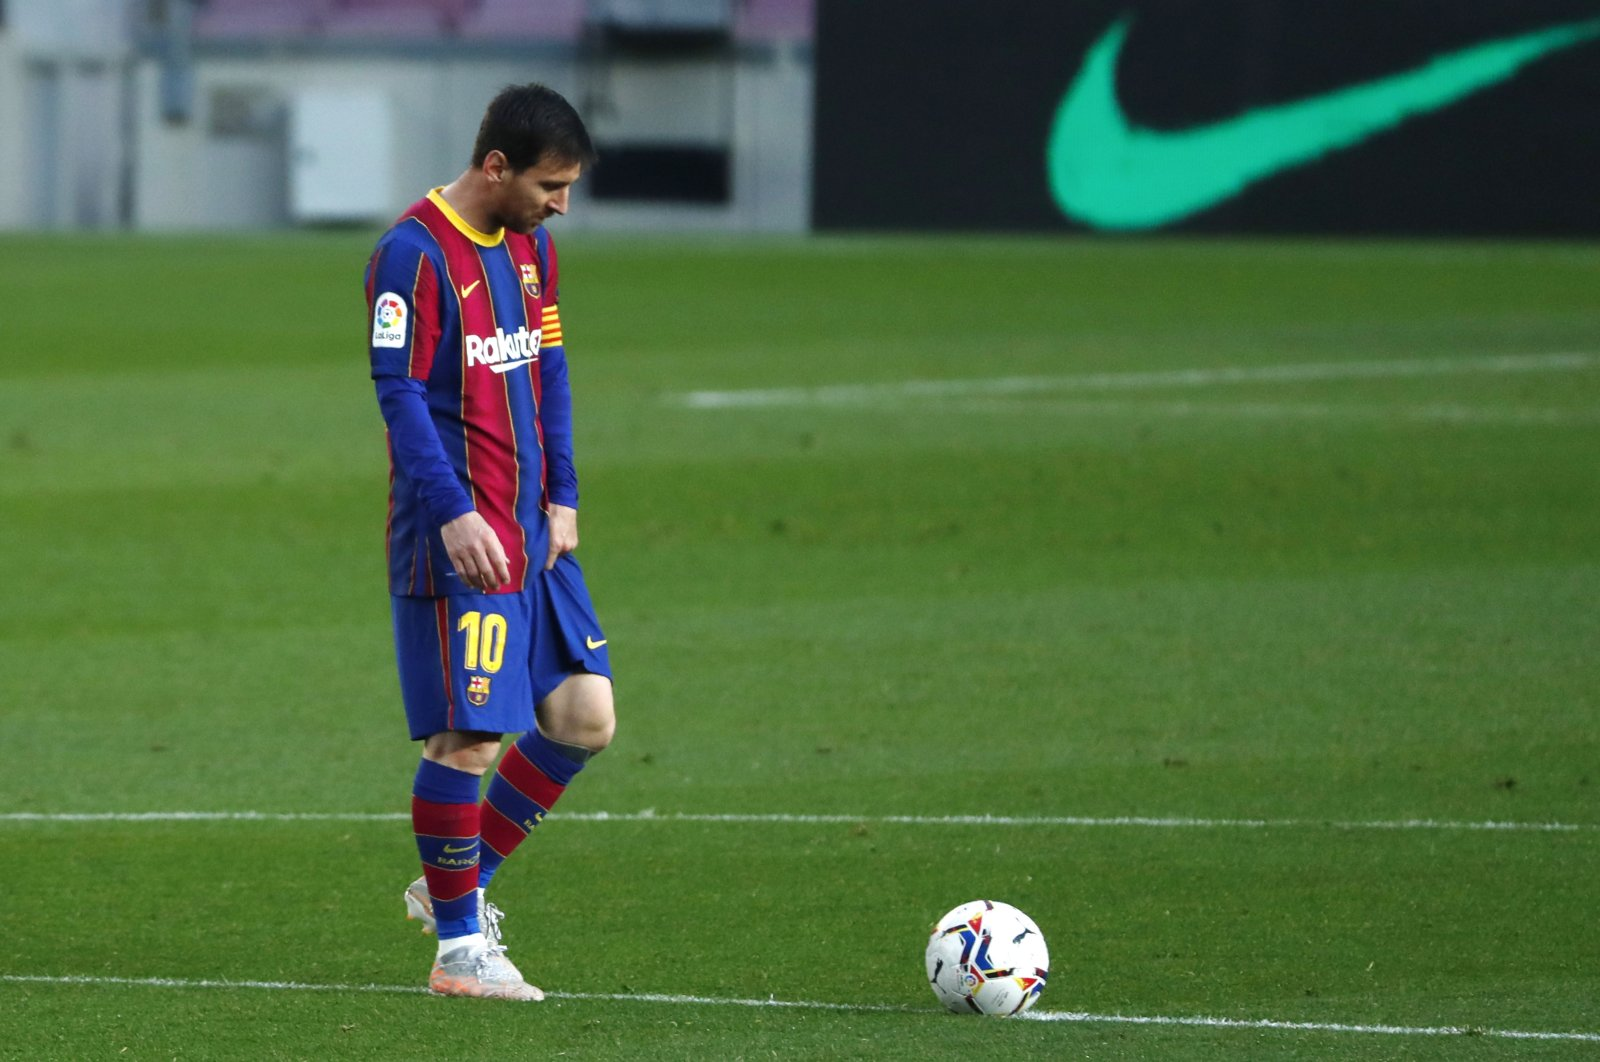 Barcelona's Lionel Messi reacts during the Spanish La Liga match against Granada at the Camp Nou stadium in Barcelona, Spain, April 29, 2021. (AP Photo)